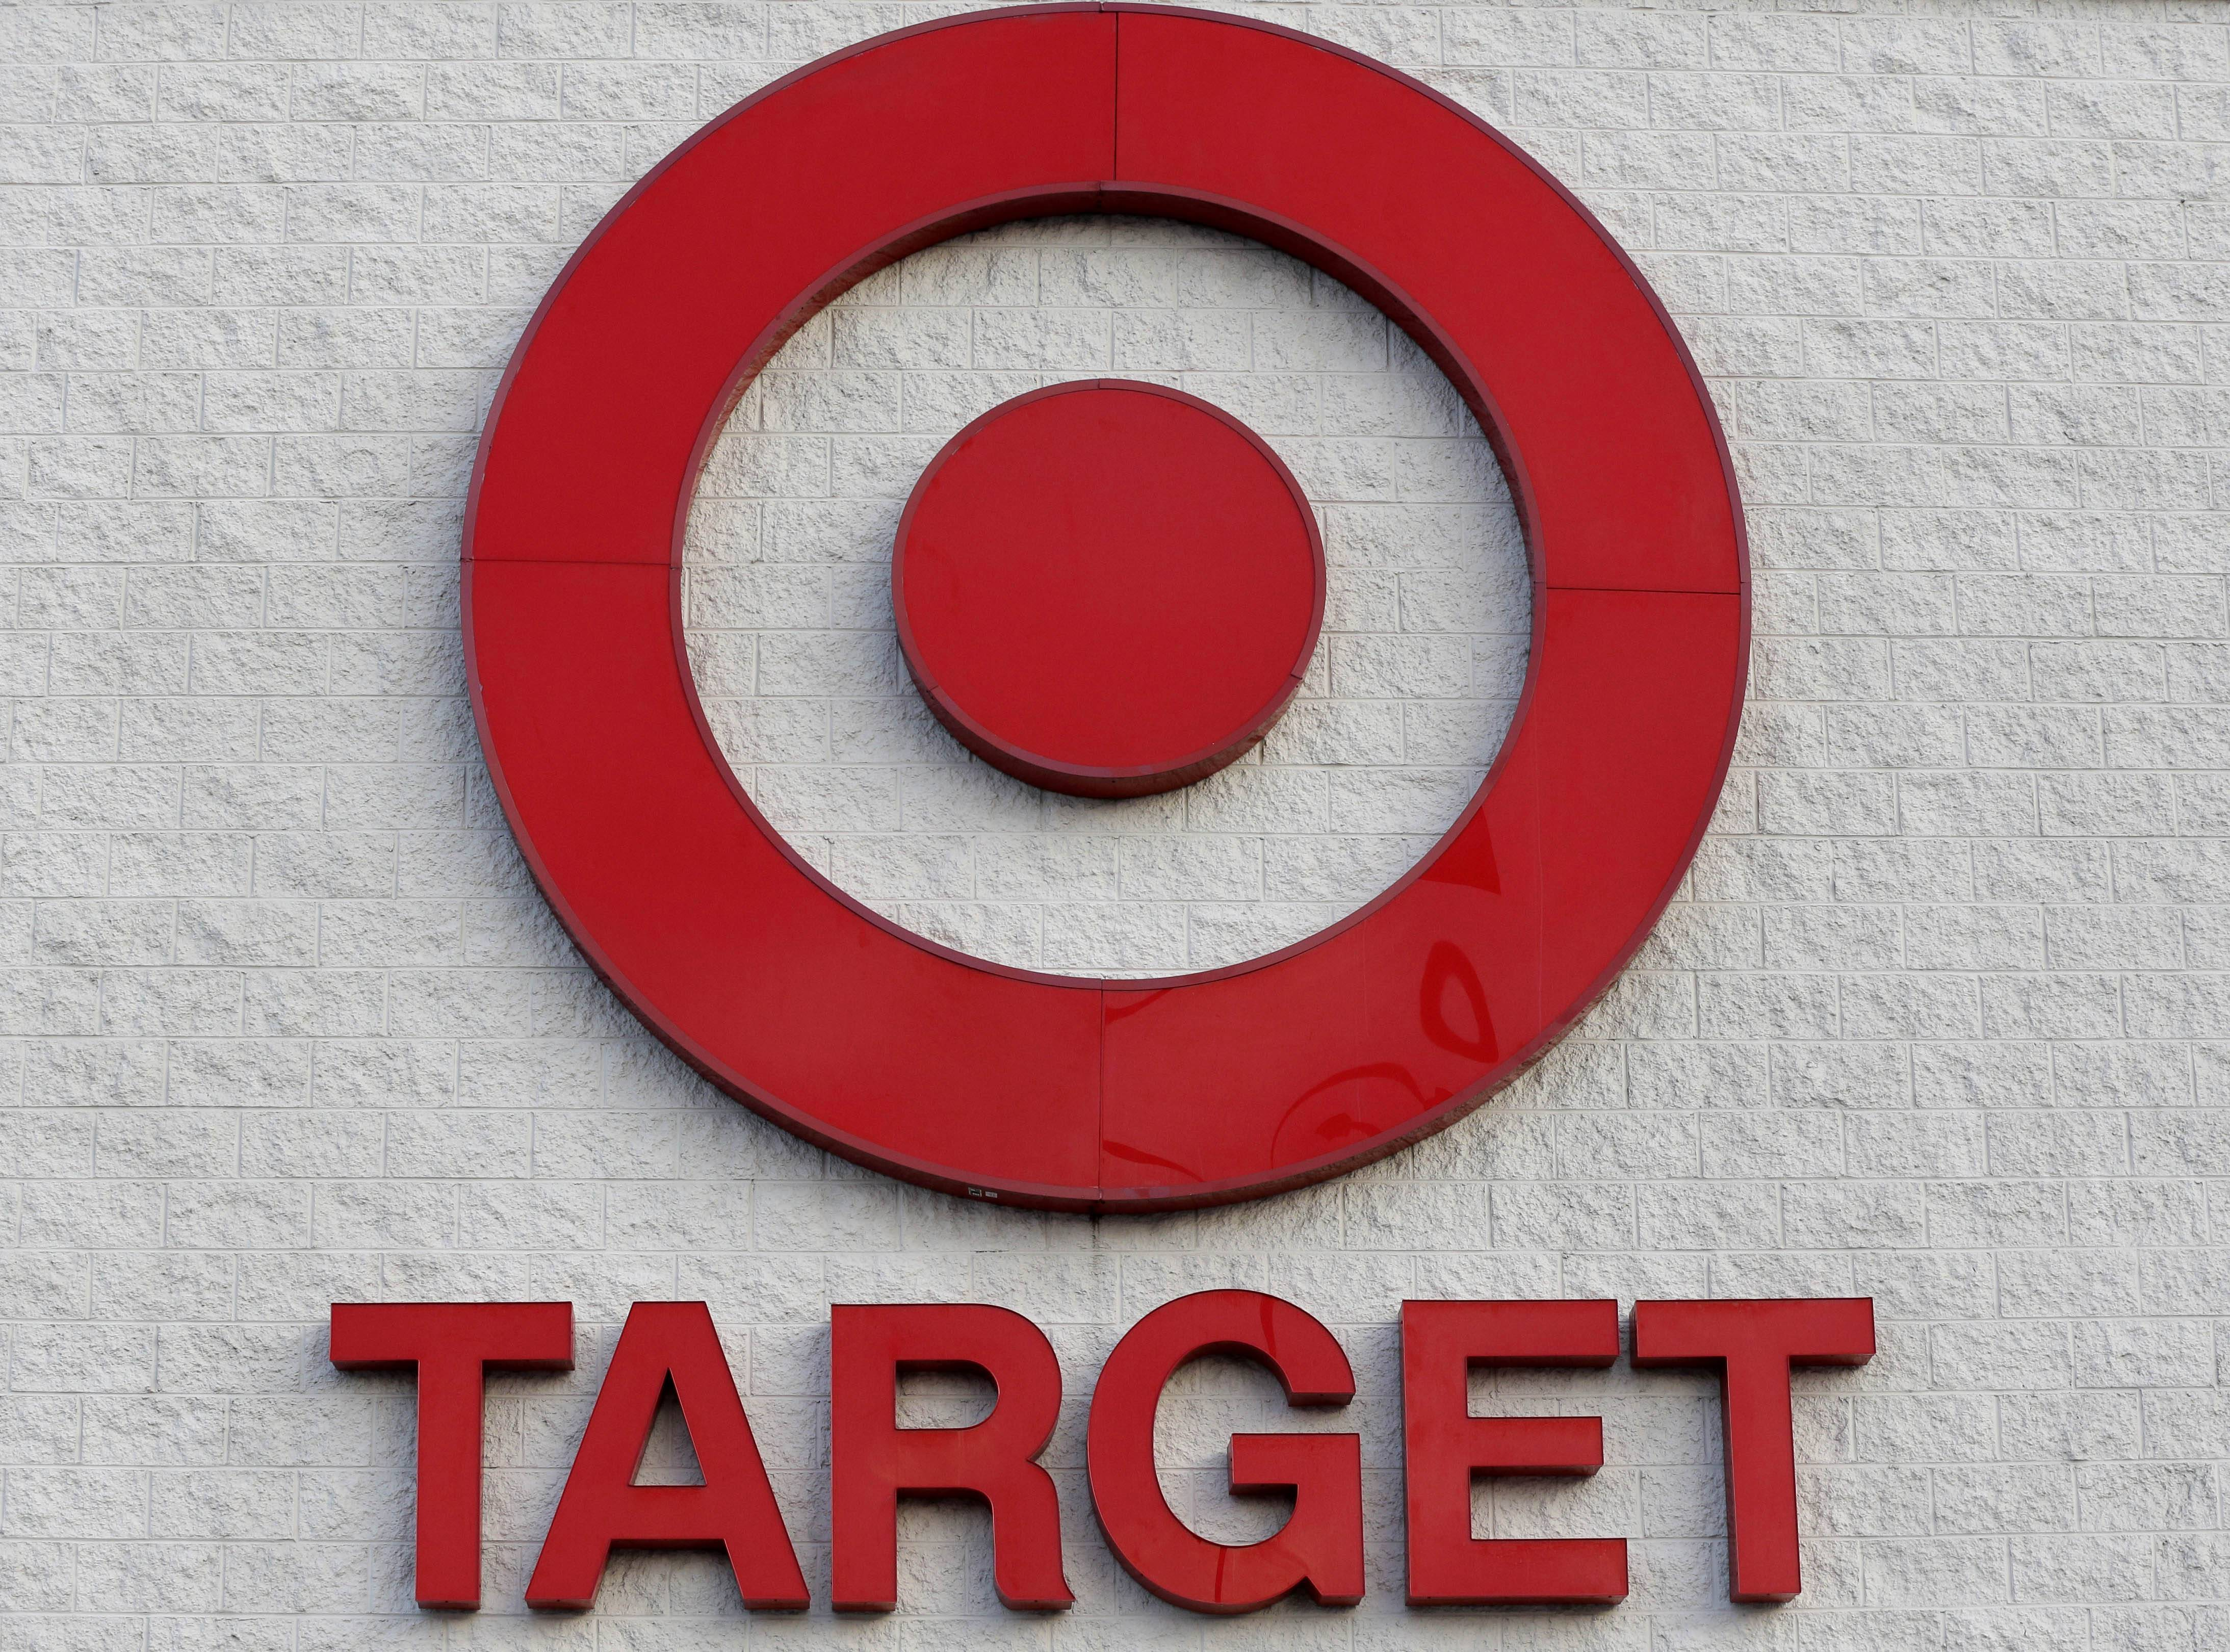 A massive data breach at Target Corp. that exposed tens of millions of credit card numbers has focused attention on a patchwork of state consumer notification laws and renewed a push for a single national standard.